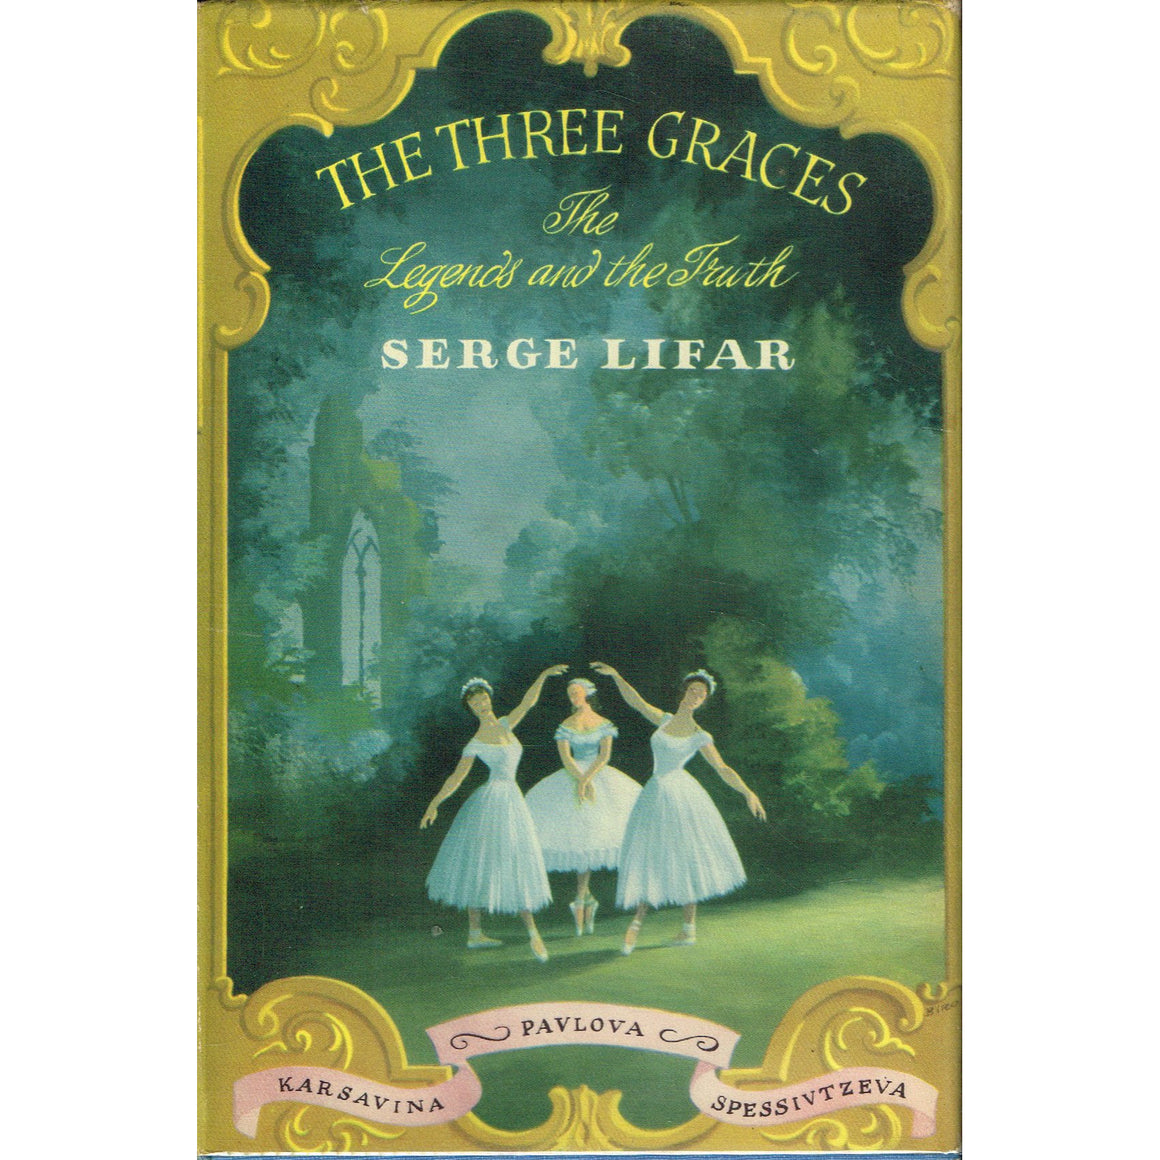 The Three Graces The Legends and the Truth